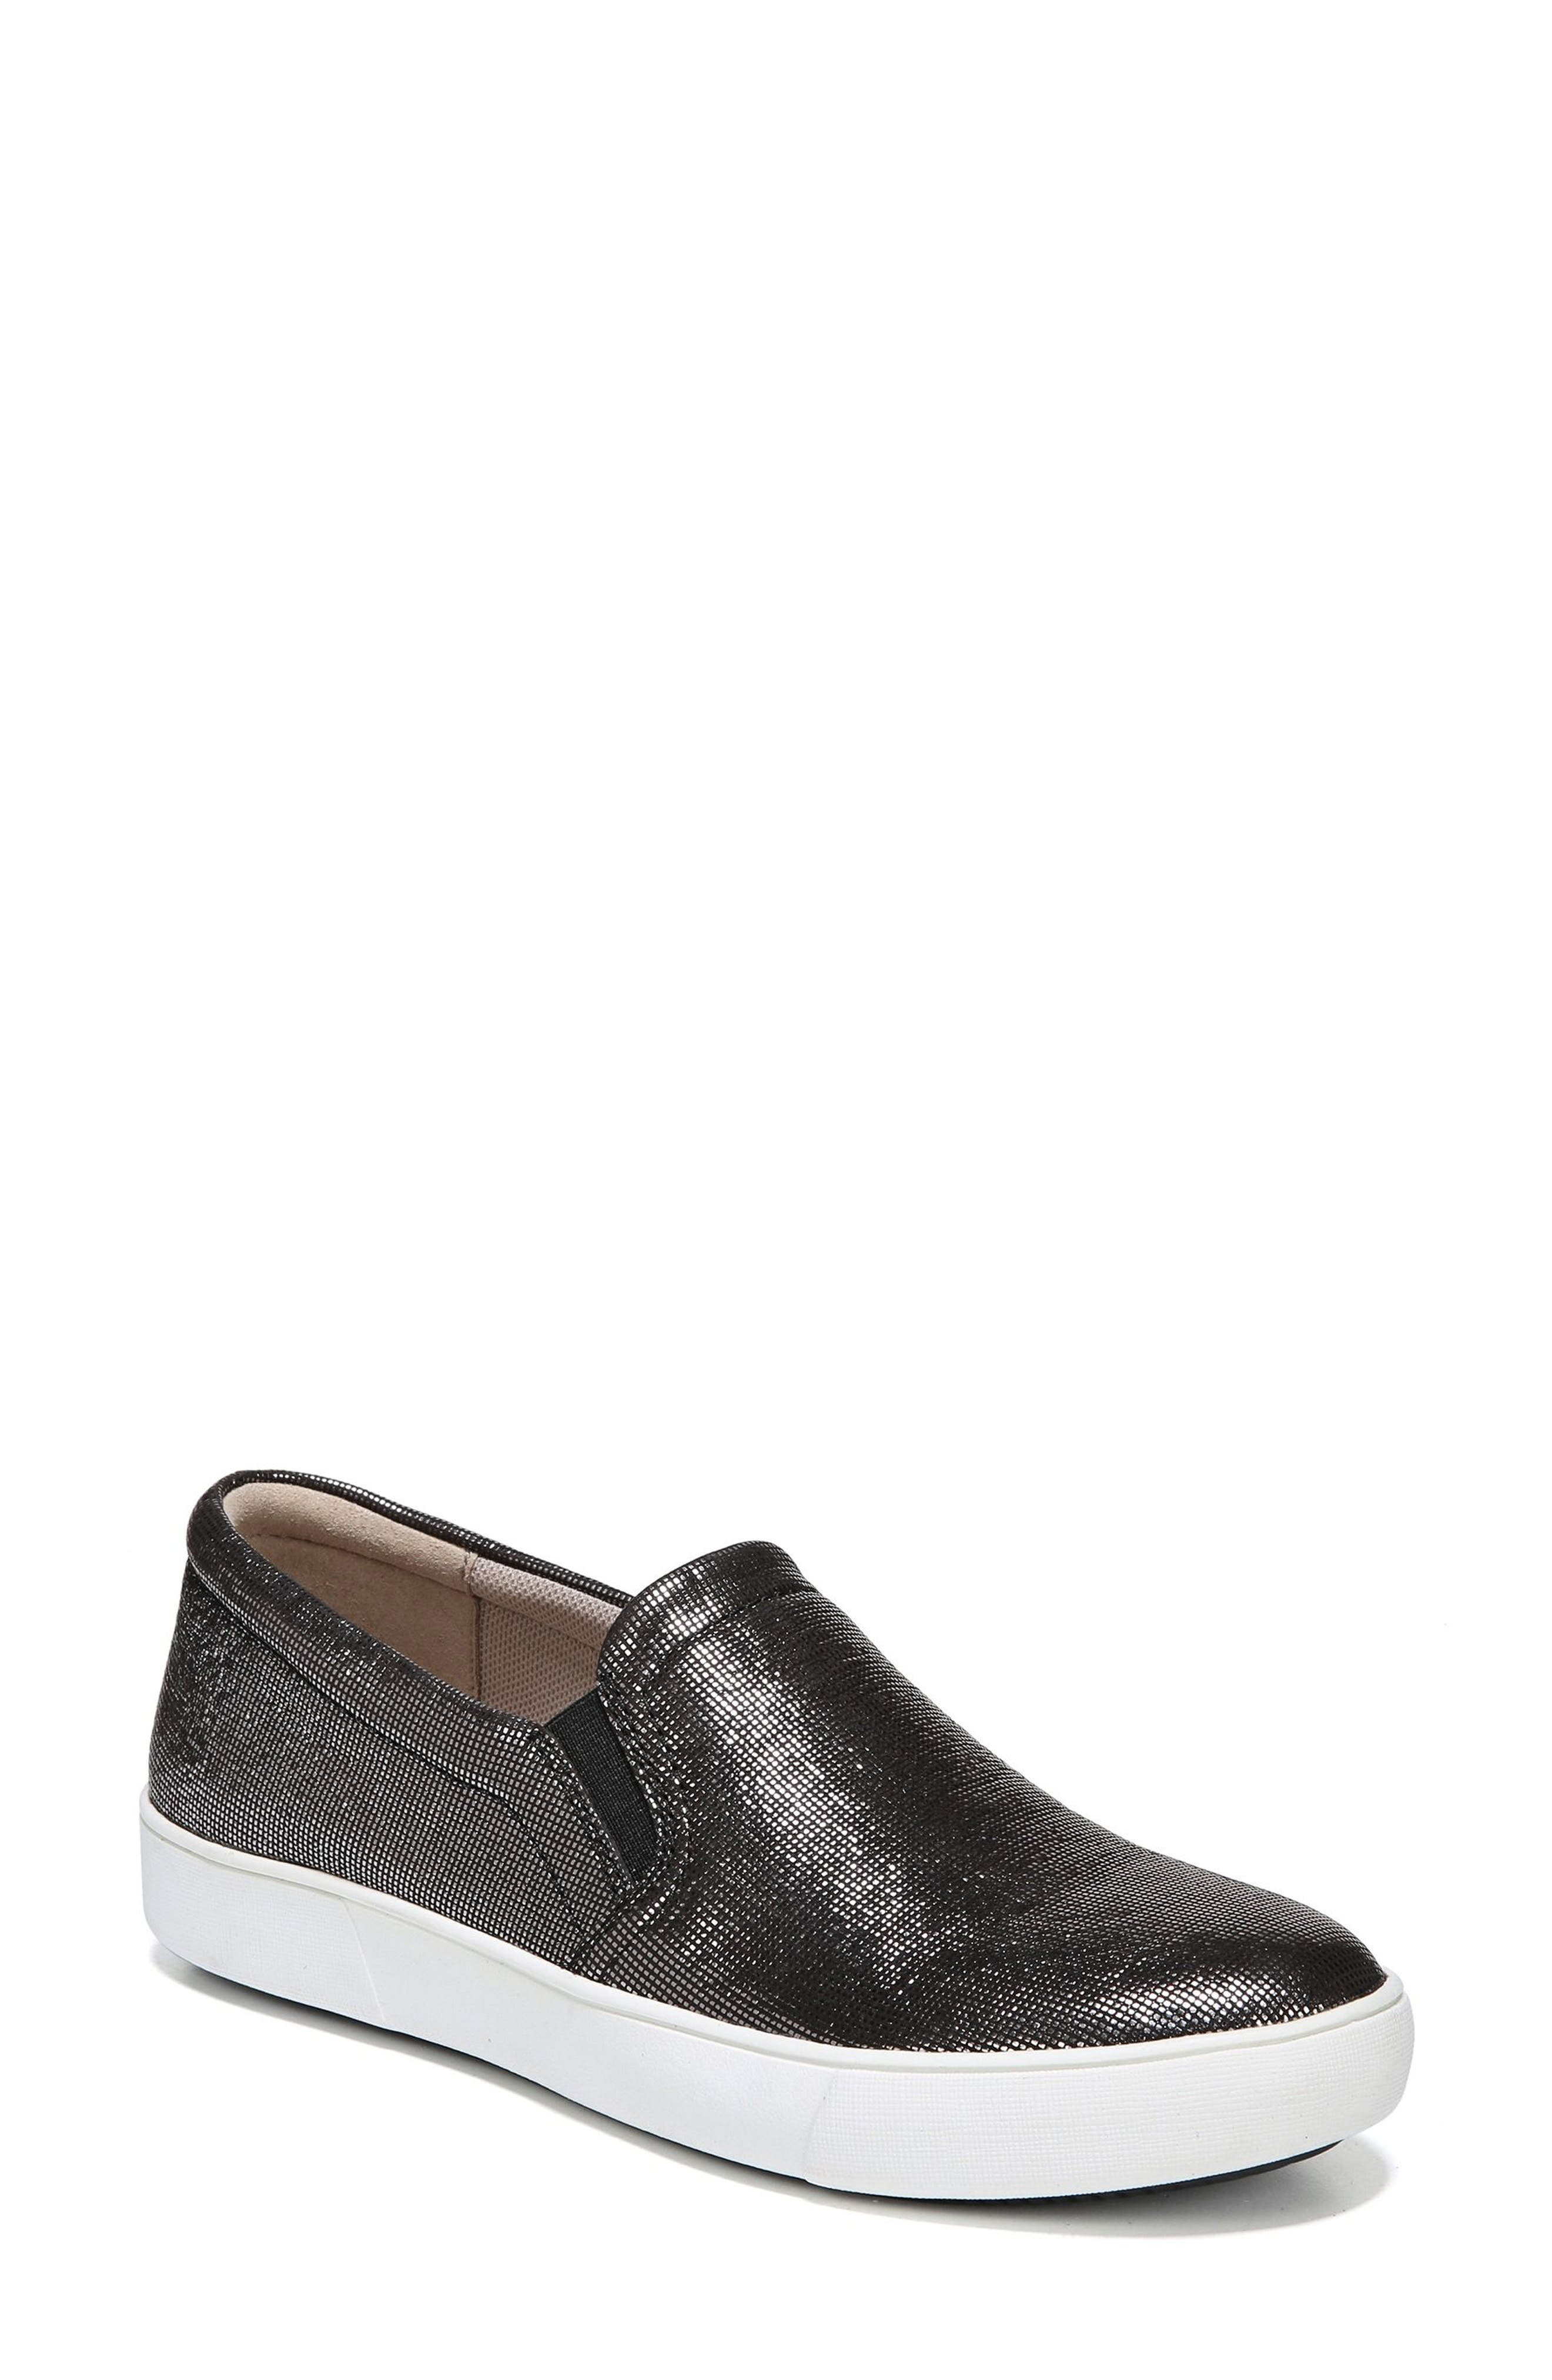 Marianne Slip-On Sneaker,                             Main thumbnail 1, color,                             DEEP SILVER PRINTED LEATHER